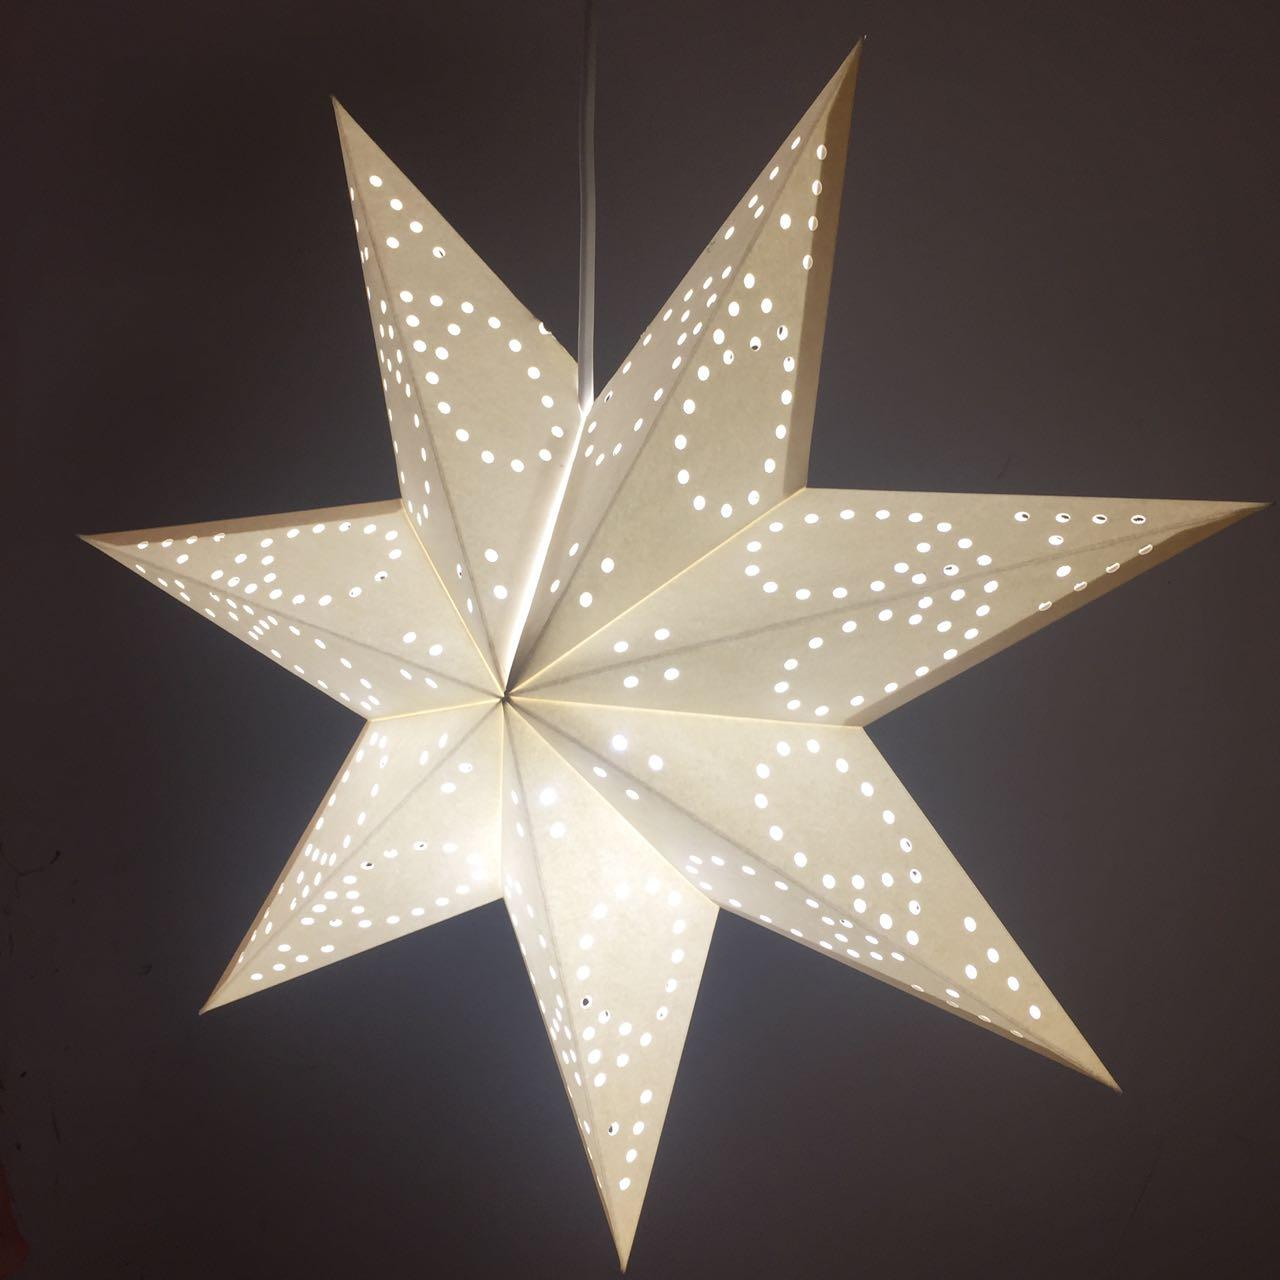 2018 christmas decoration lights 7 pointed paper star lantern 2018 christmas decoration lights 7 pointed paper star lantern lampshade hanging decoration with 12 foot standard power cord with onoff switch from jxlights aloadofball Gallery